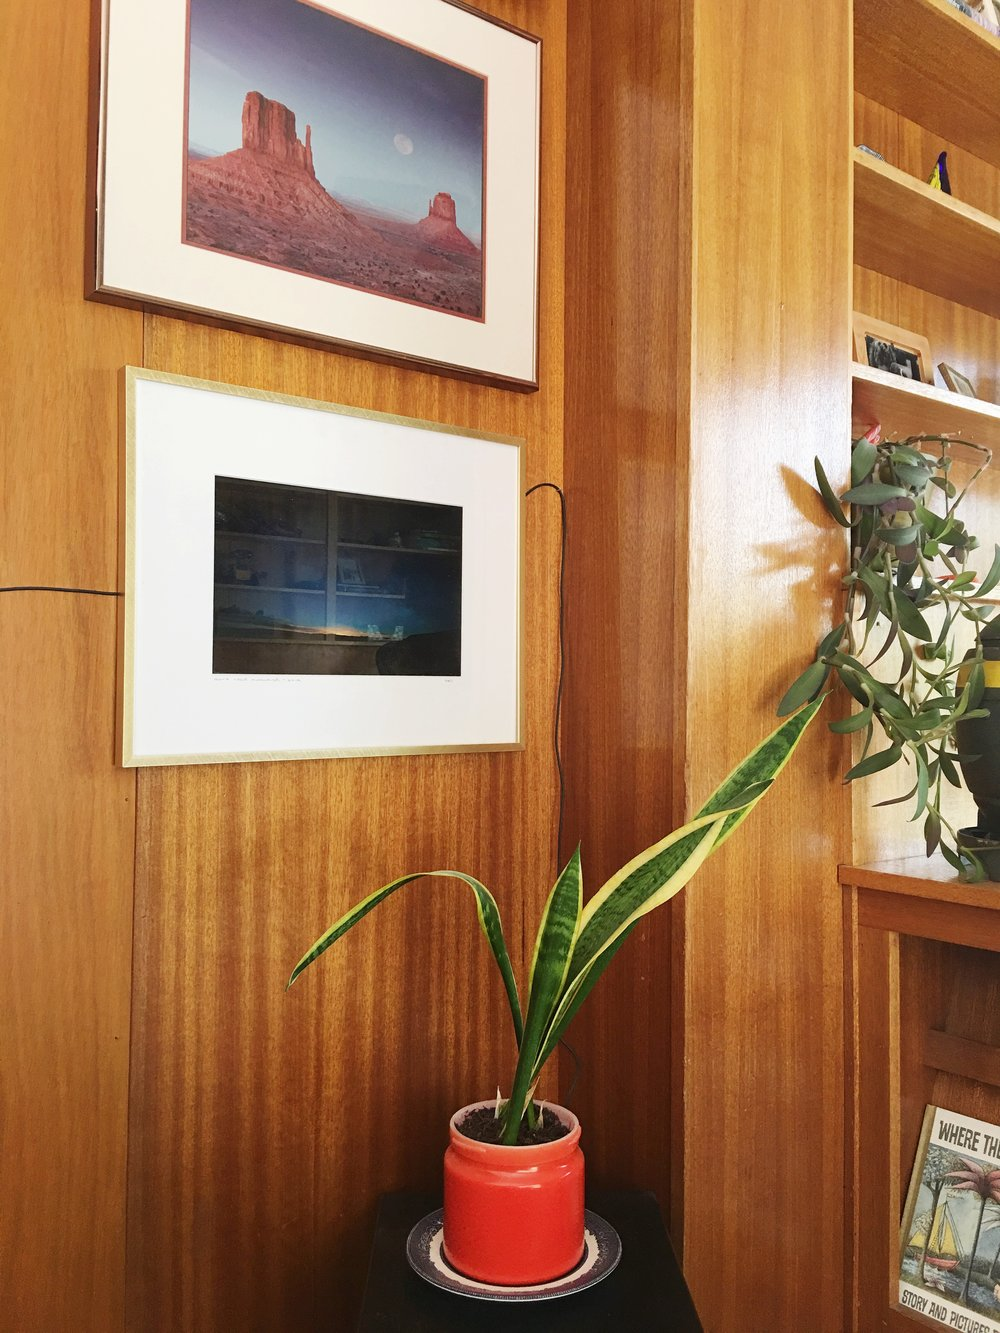 A little snake plant in a competition orange pot underneath a desert photograph my father-in-law took. Note the wire on the wall. Maybe we'll work on that one day. ;)